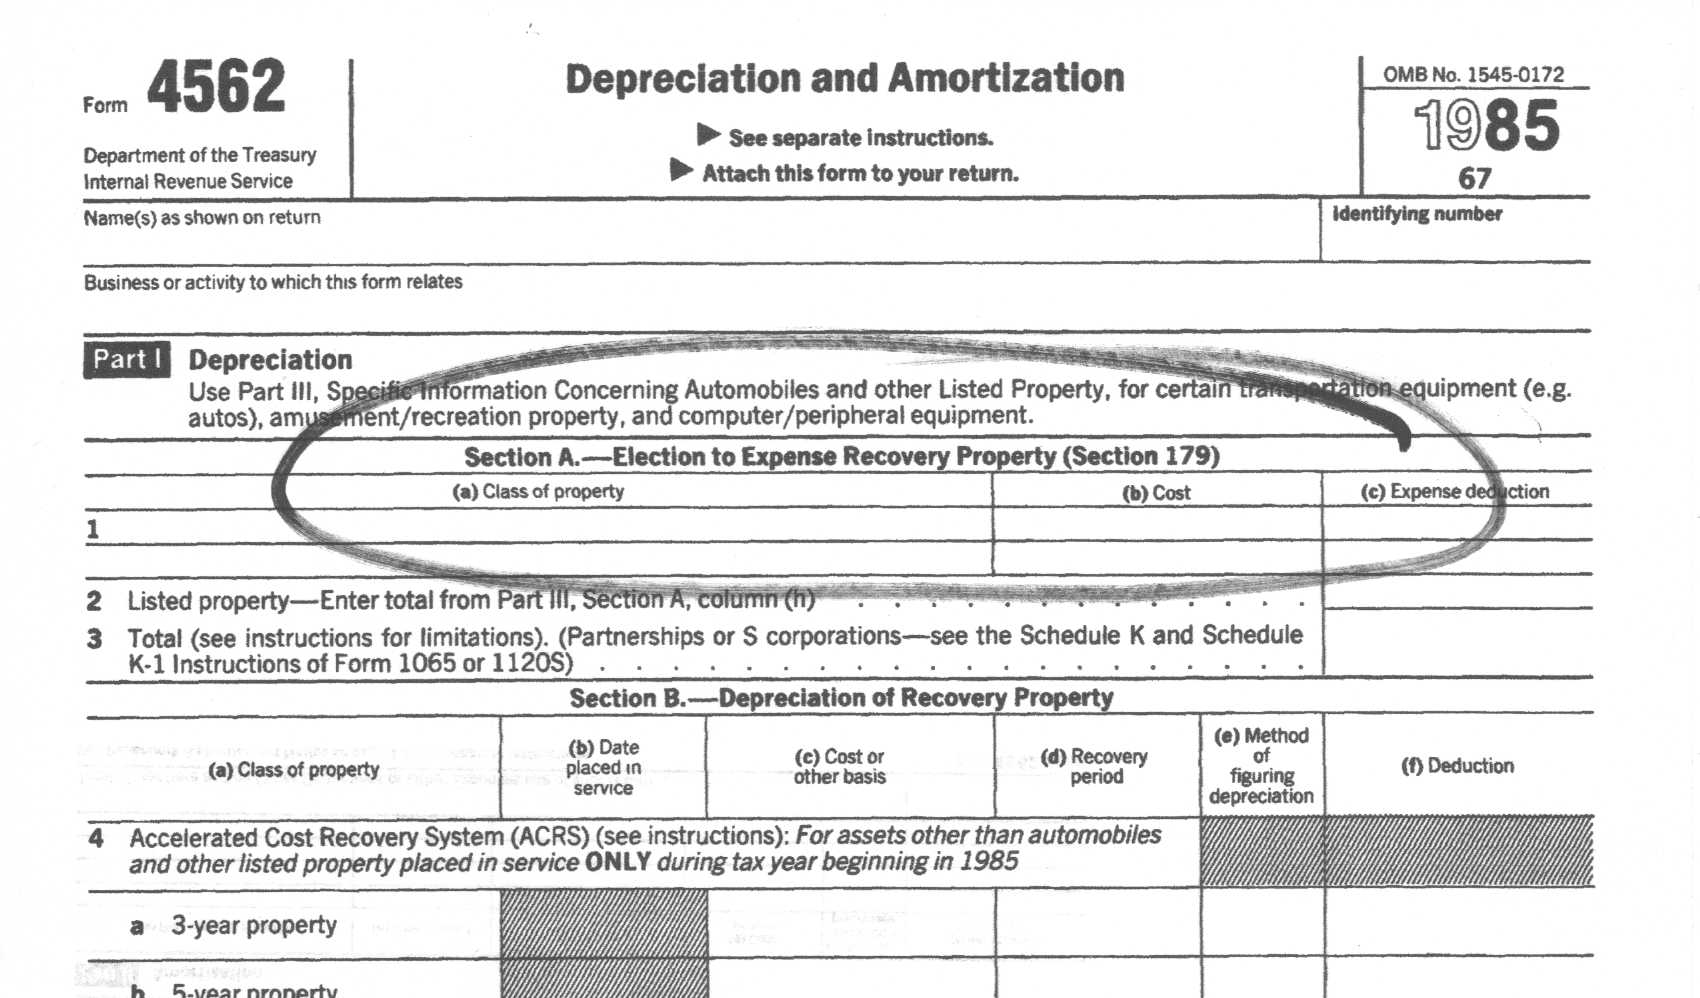 IRS Form 4562 Depreciation and Amortization - oukas.info